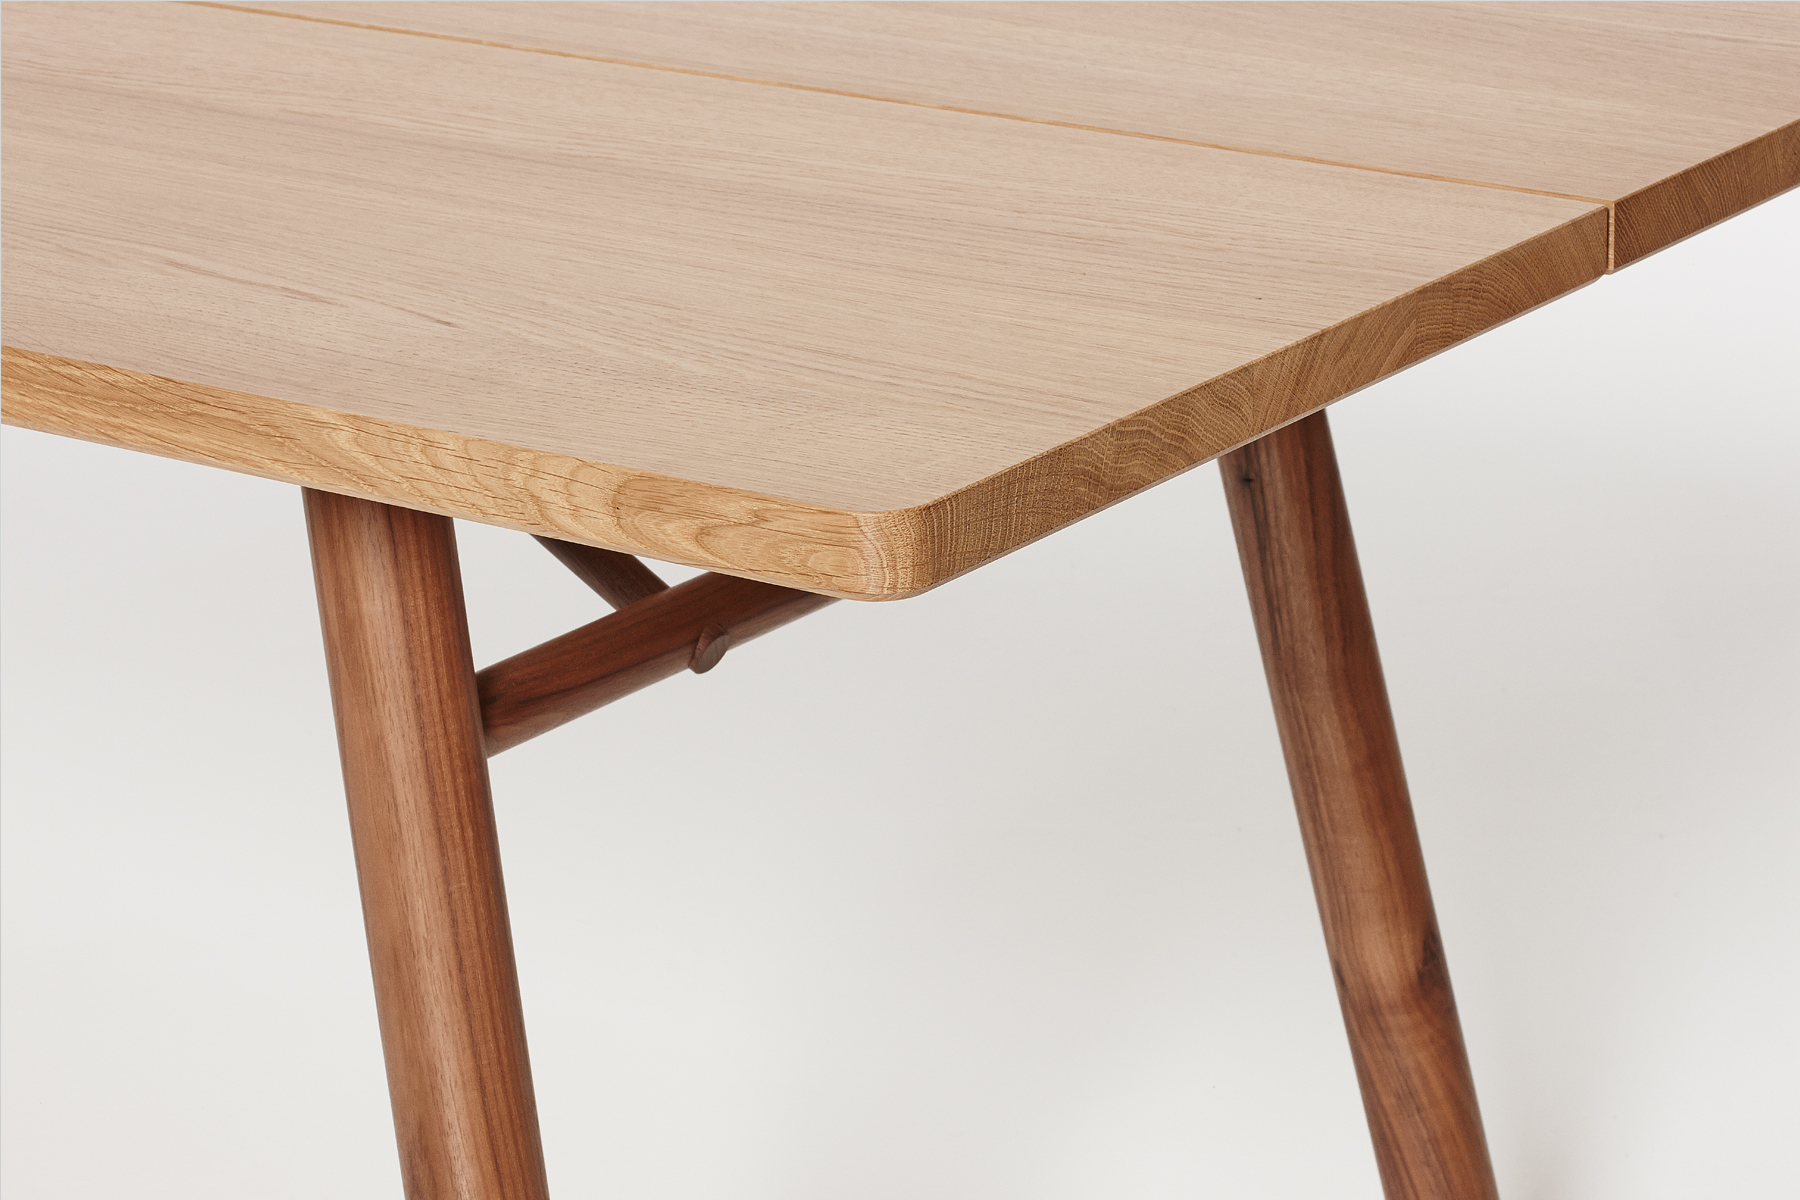 Fosse Table Detail